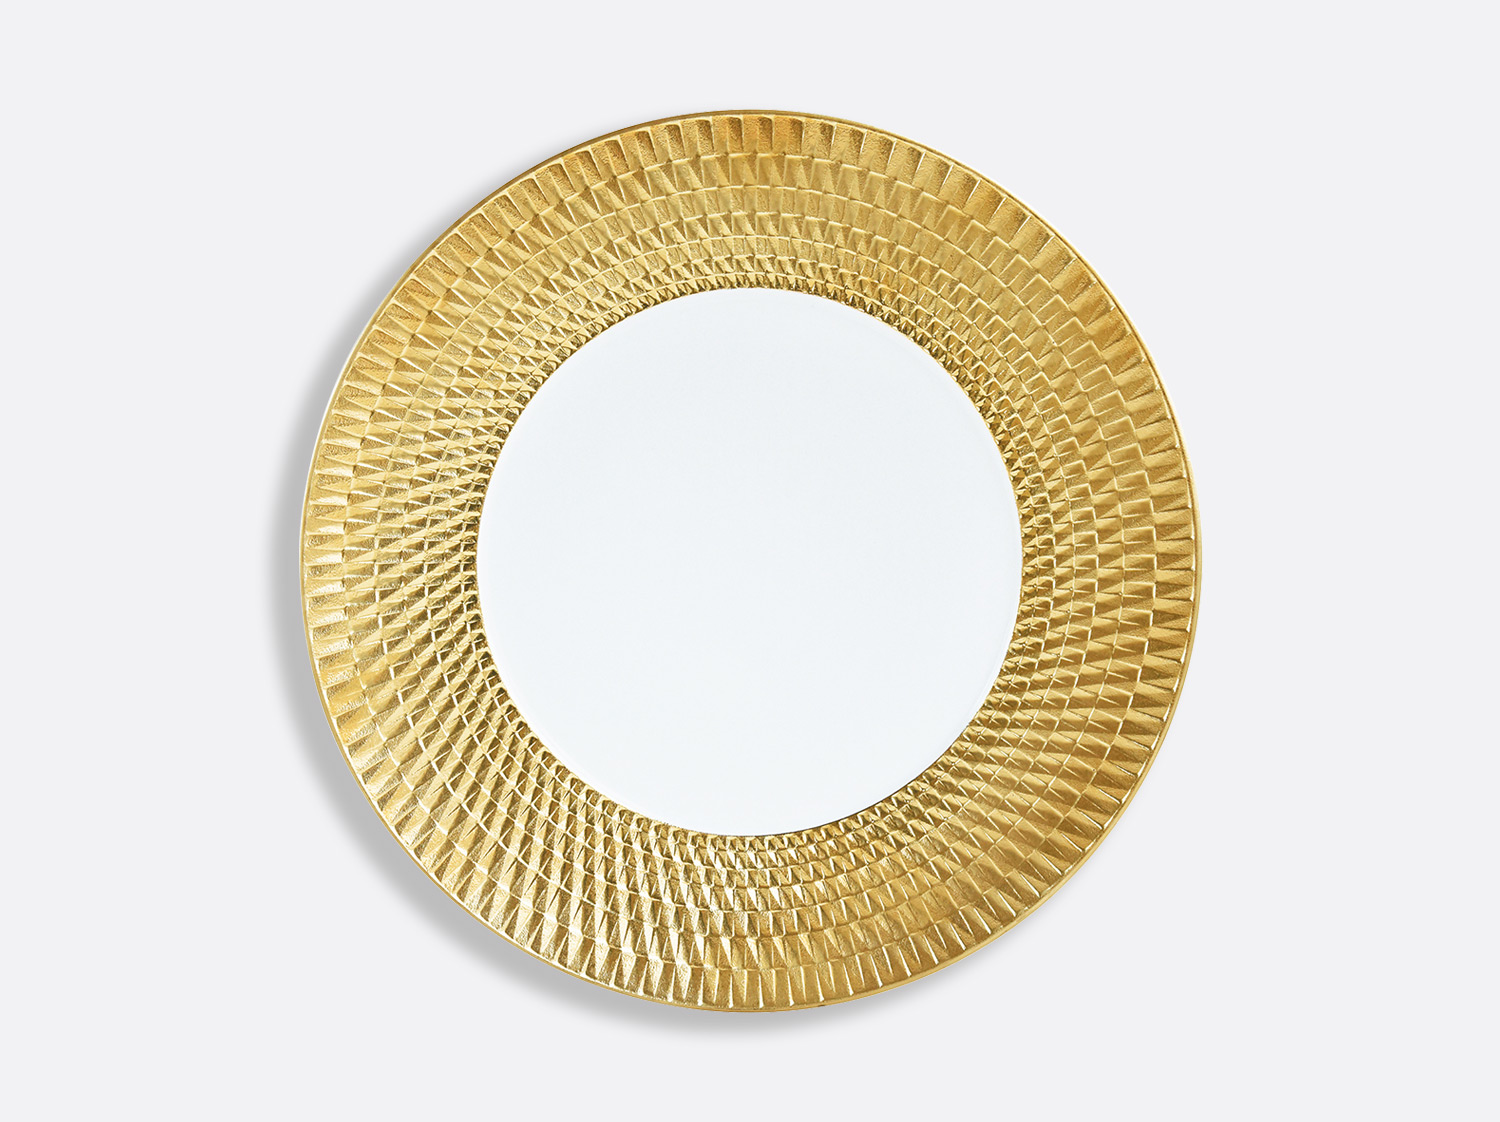 Assiette 27 cm en porcelaine de la collection Twist or Bernardaud